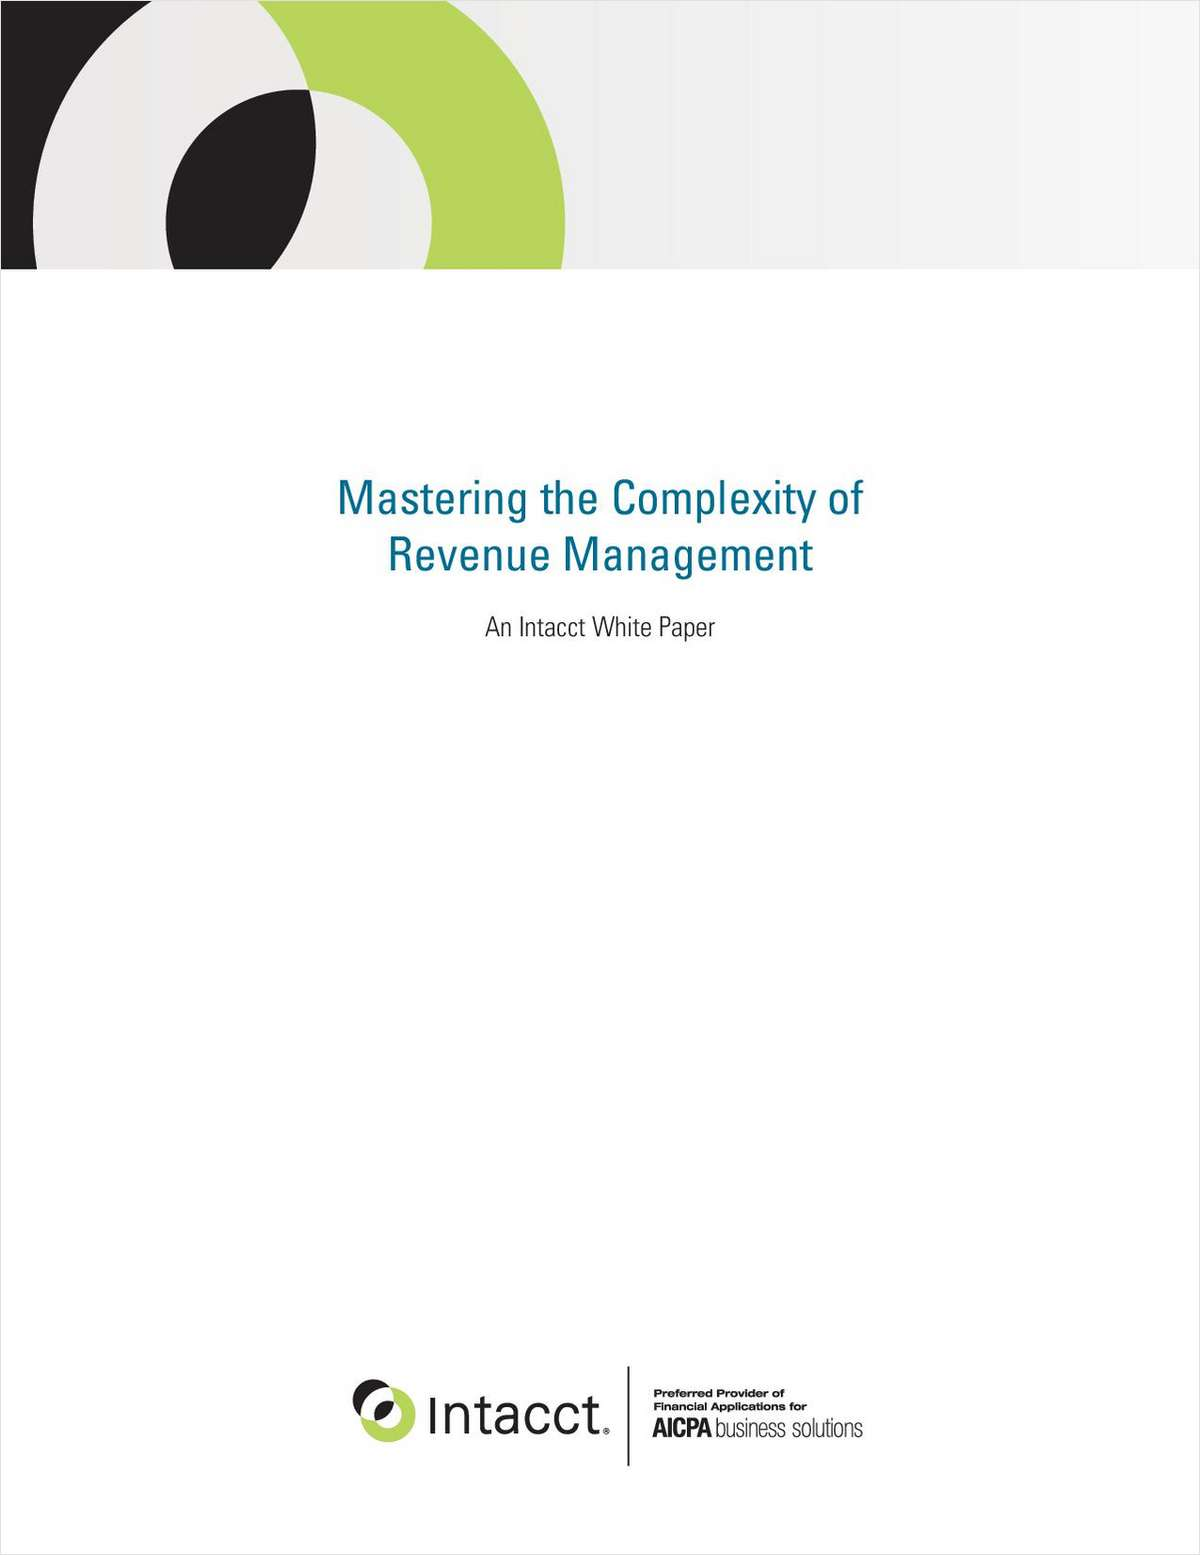 Mastering the Complexities of Revenue Management